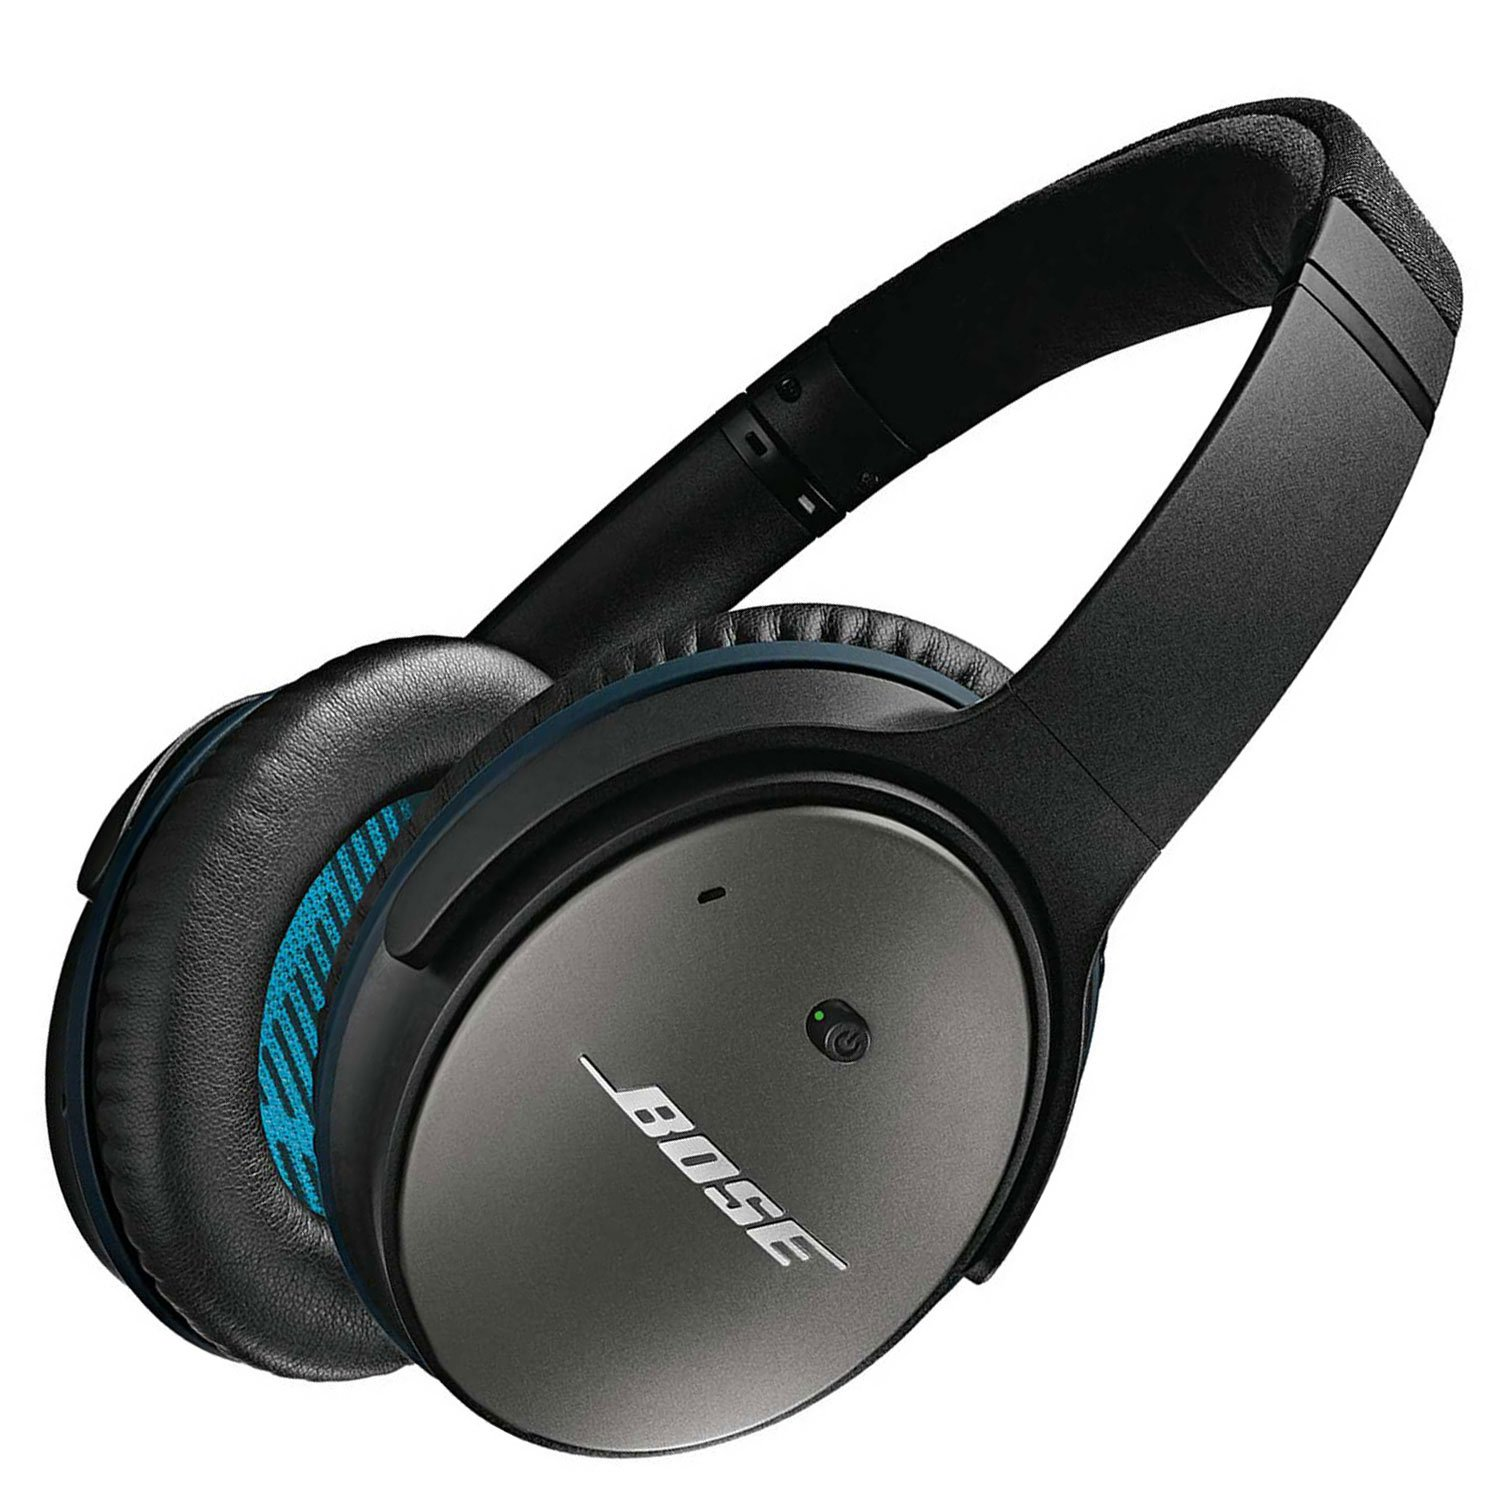 Bose QuietComfort 25 Acoustic best Noise Cancelling Headphones